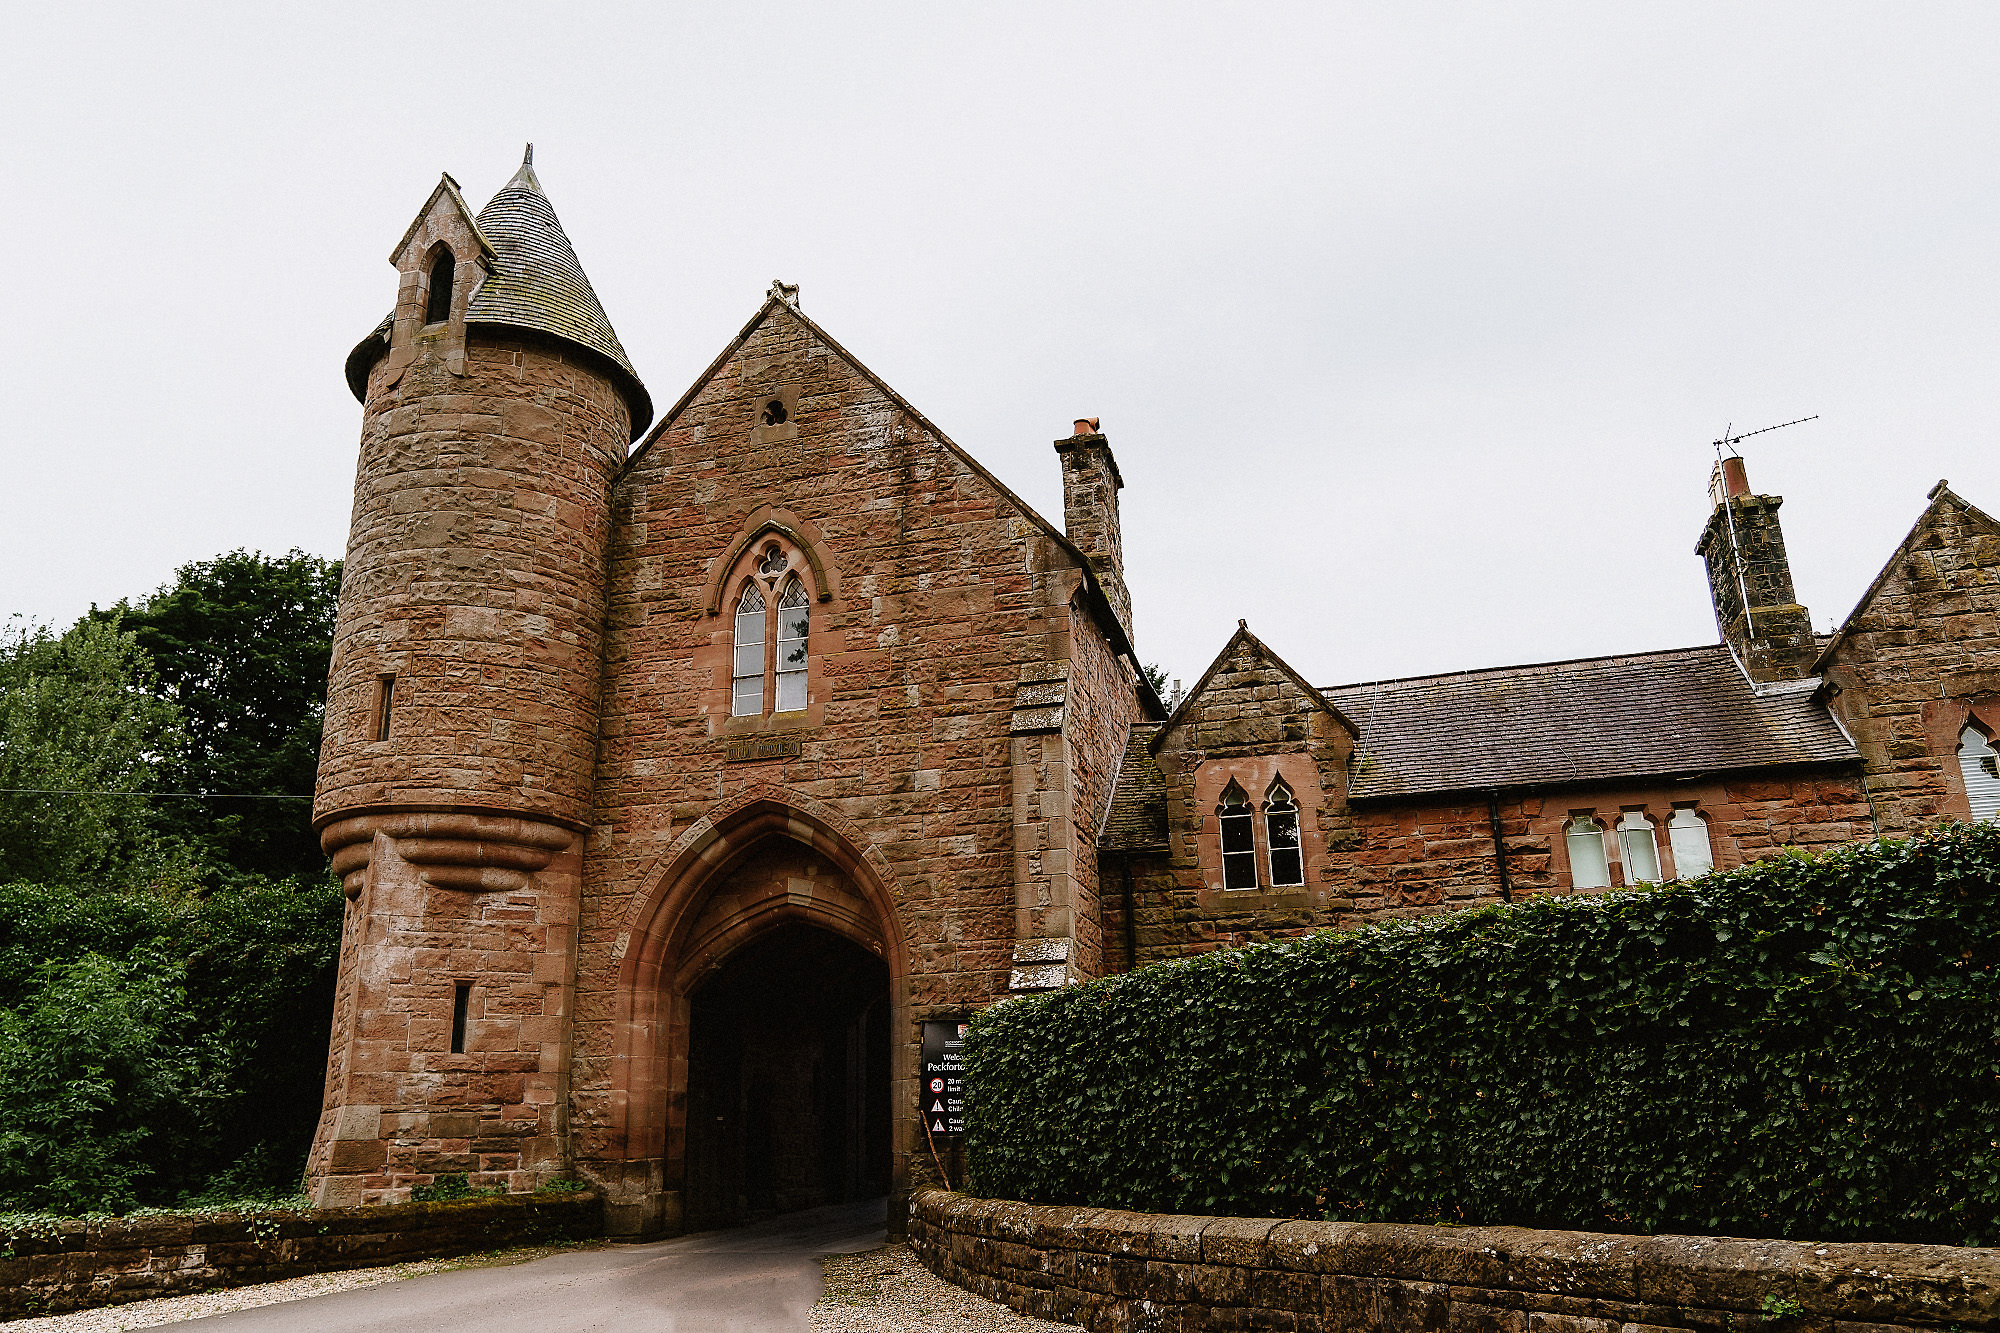 the stone gatehouse at Peckforton Castle